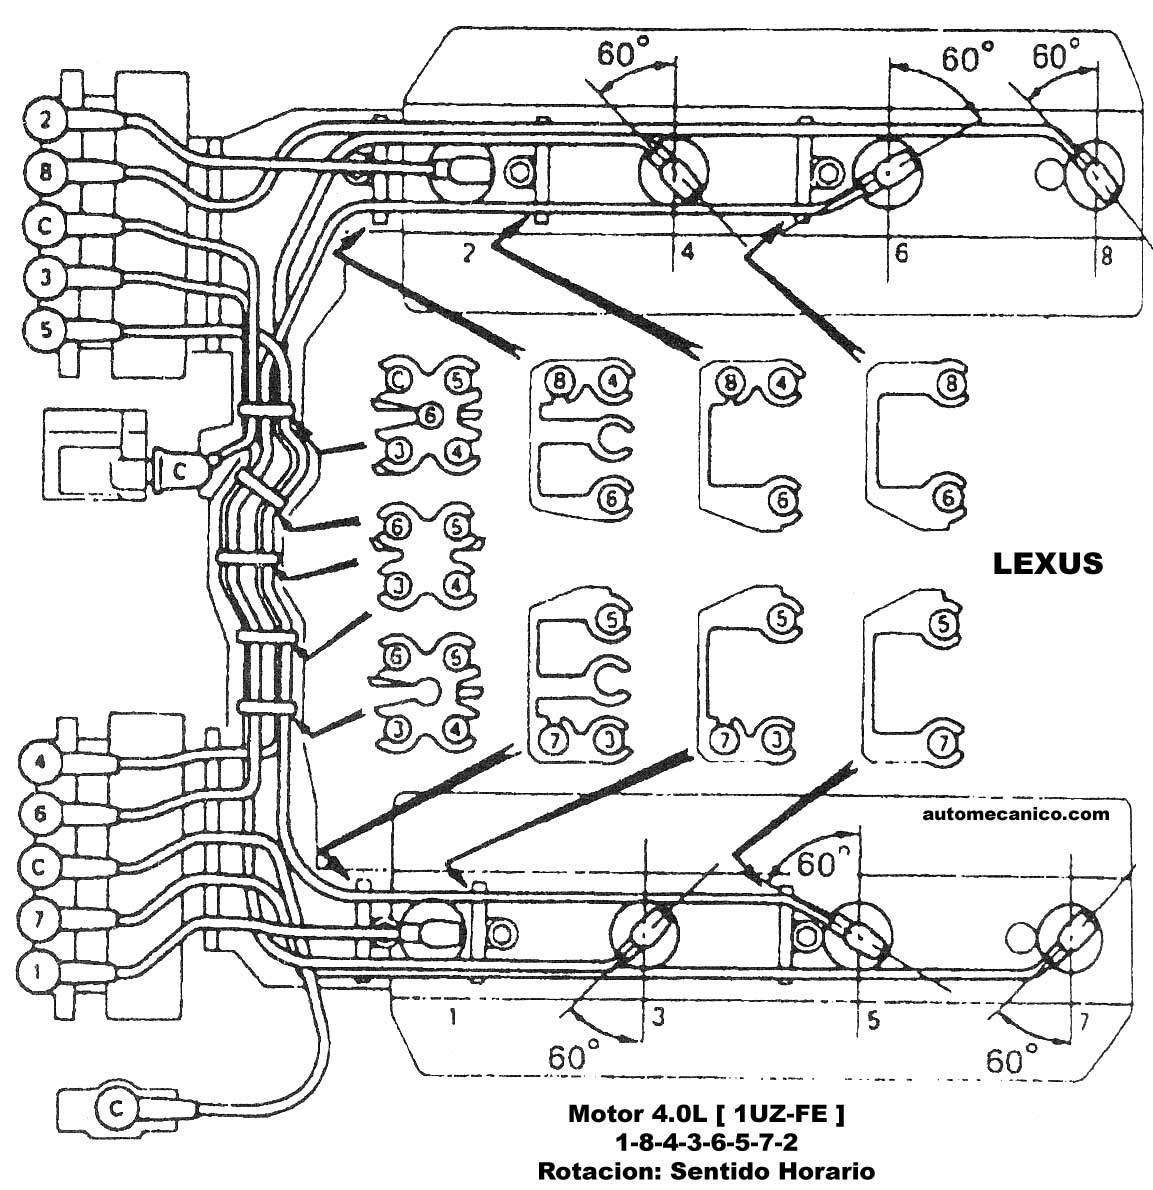 Diamante Engine Diagram 04 Circuit Wiring And Hub 1993 Lexus Sc400 Mitsubishi Auto Dodge 6g72